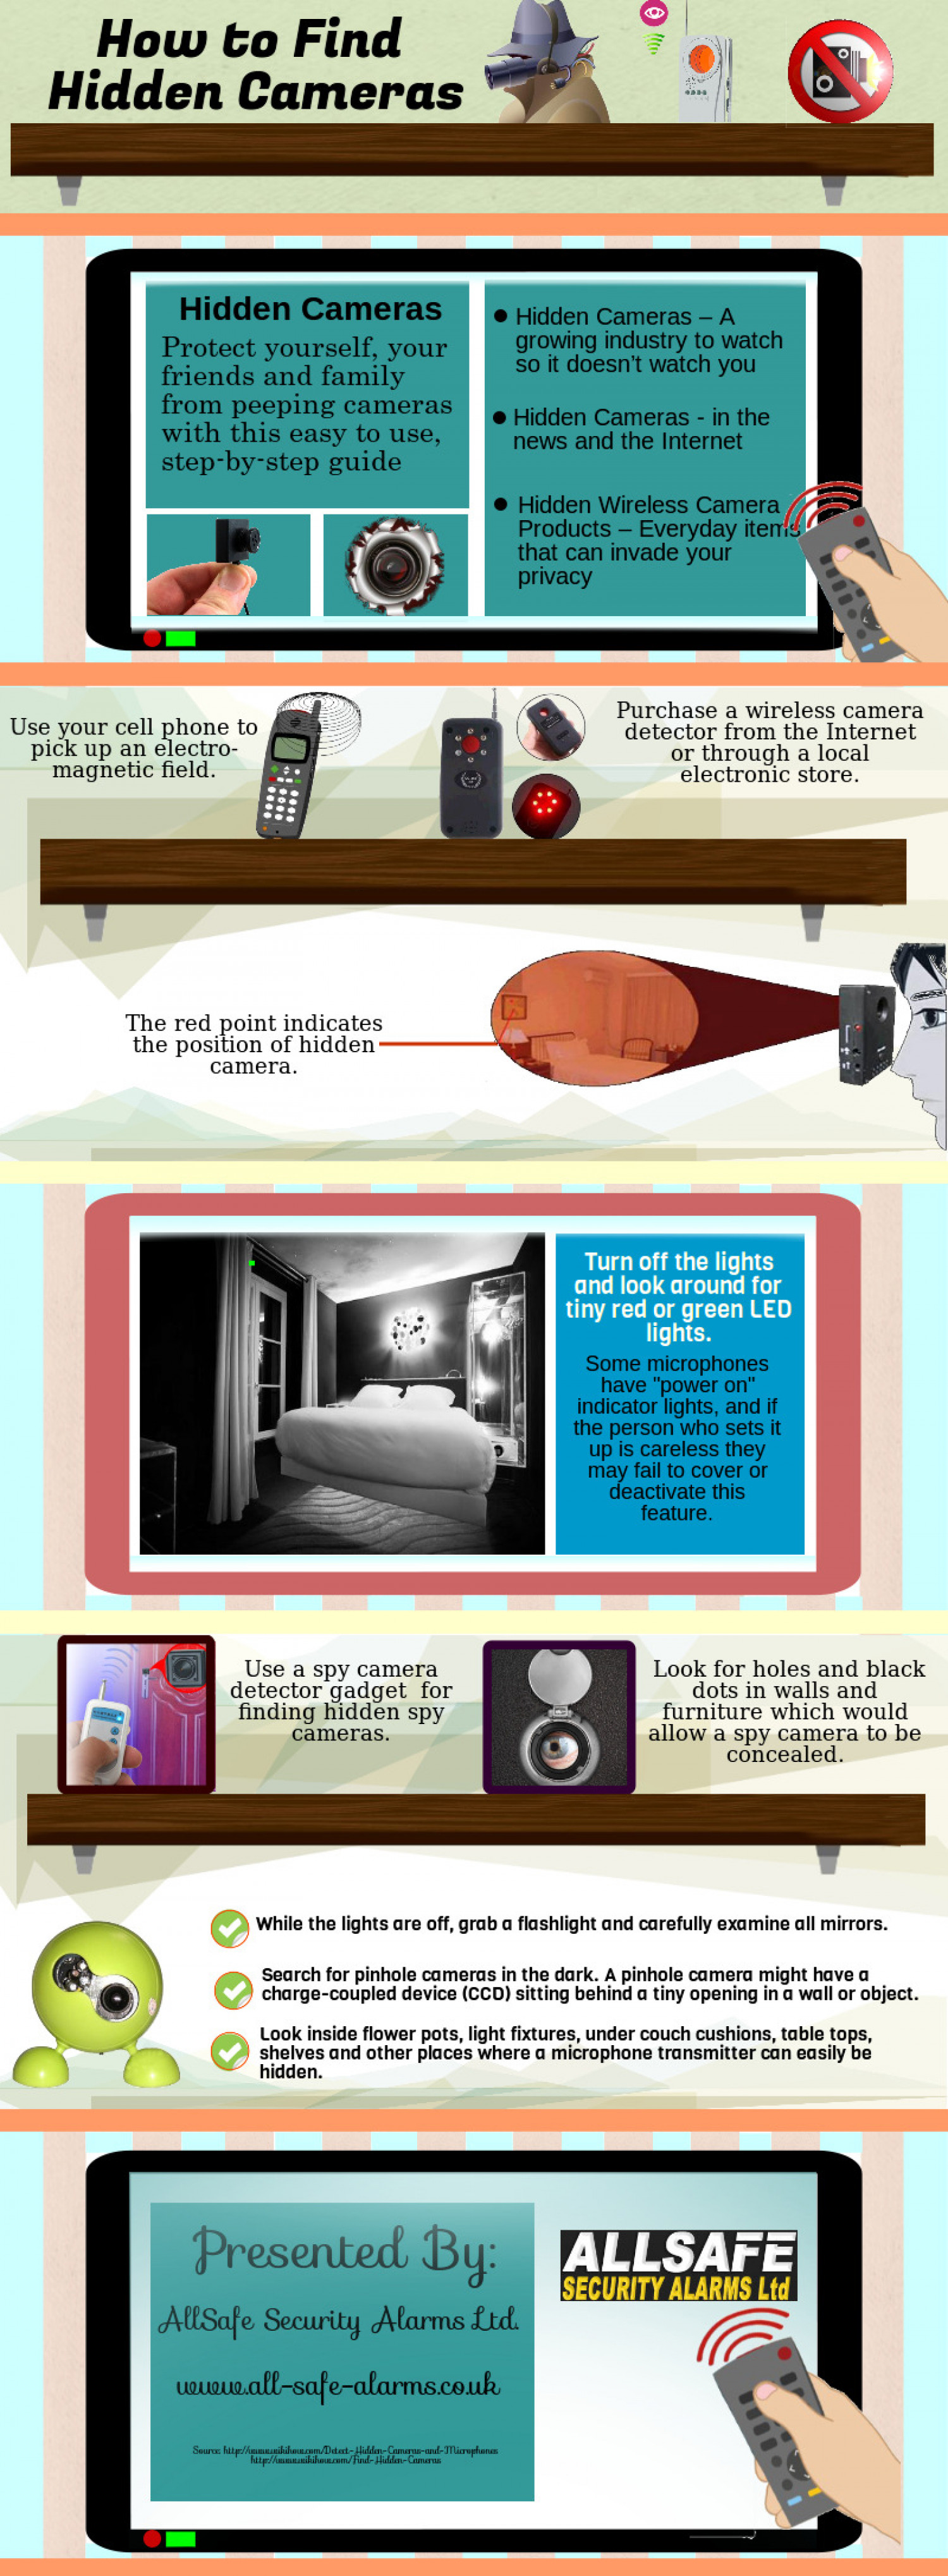 How to find Hidden Cameras Infographic